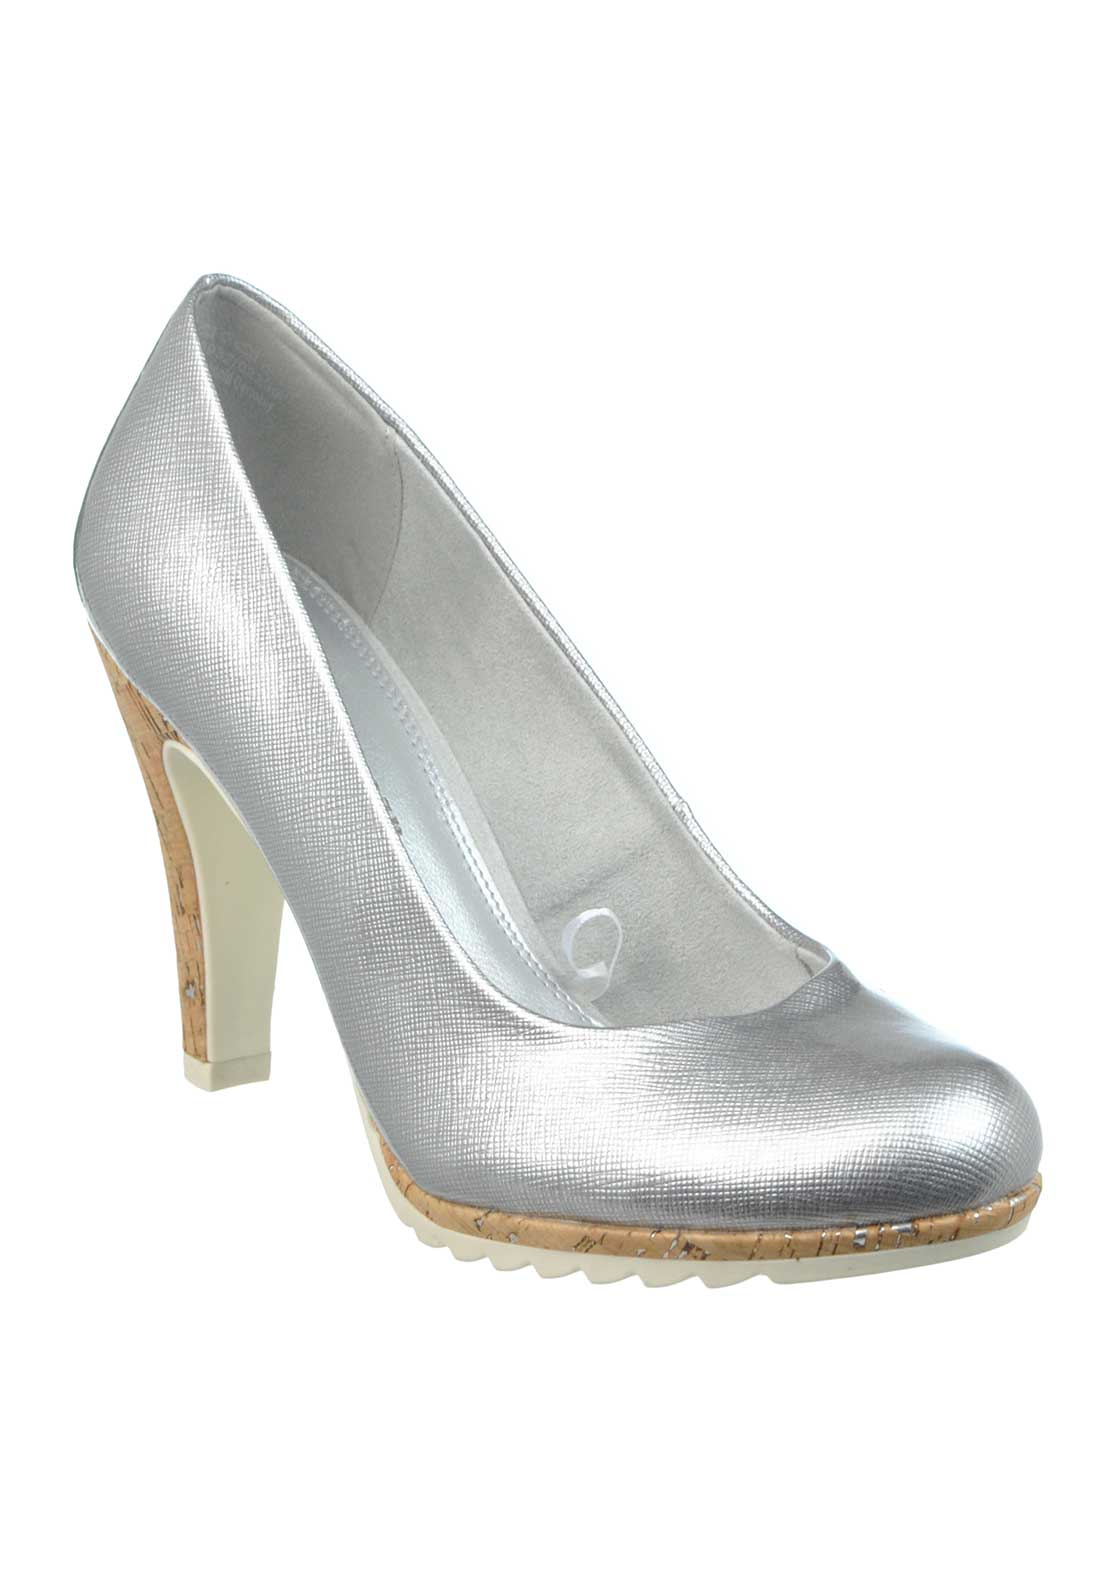 Marco Tozzi Patent Cork Heeled Court Shoes, Silver